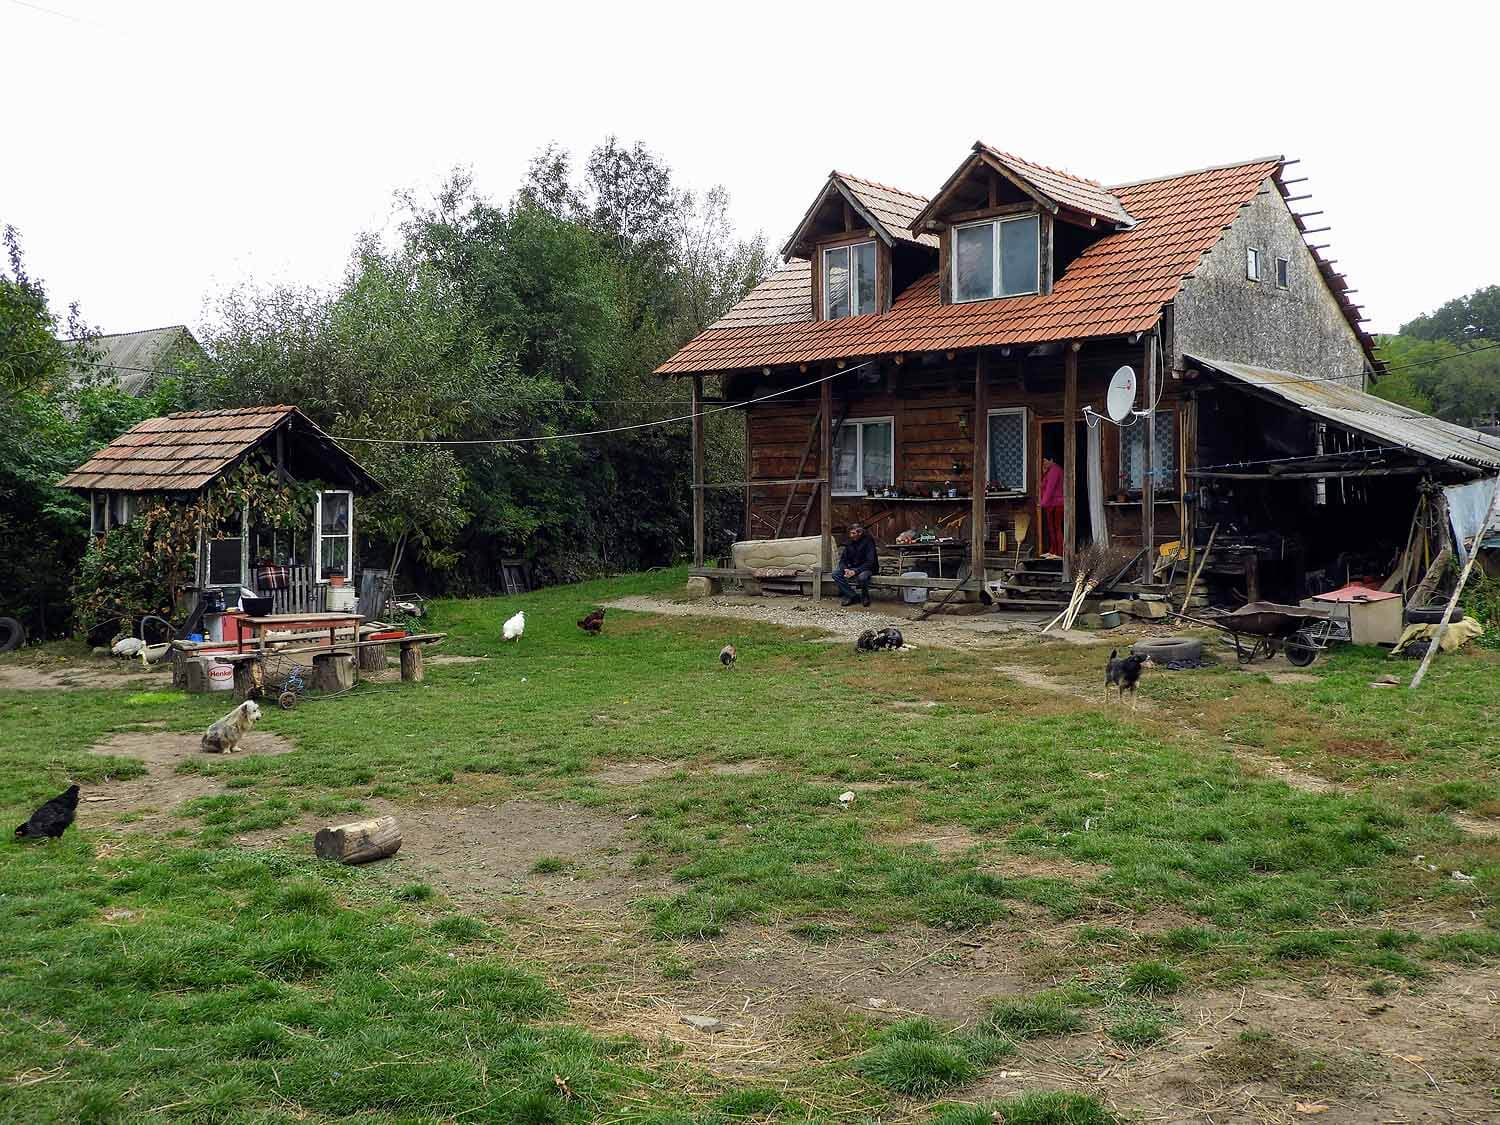 romania-valcele-farmhouse-peasant.jpg